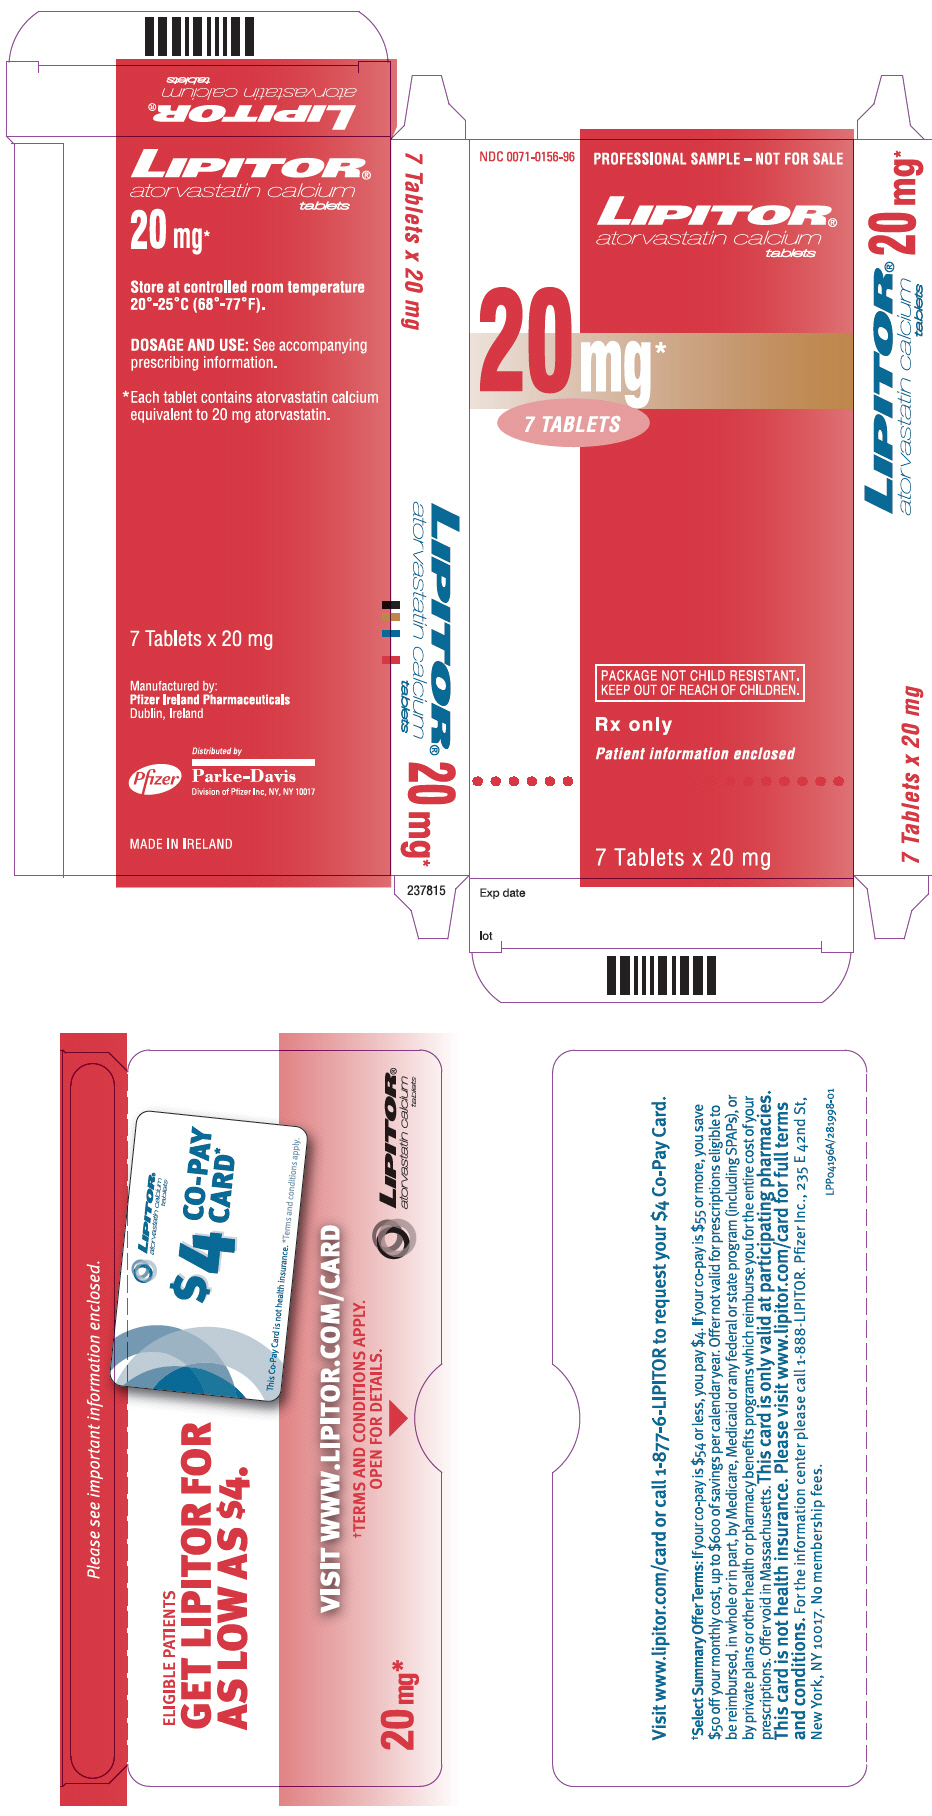 PRINCIPAL DISPLAY PANEL - 20 mg Tablet Packet Carton